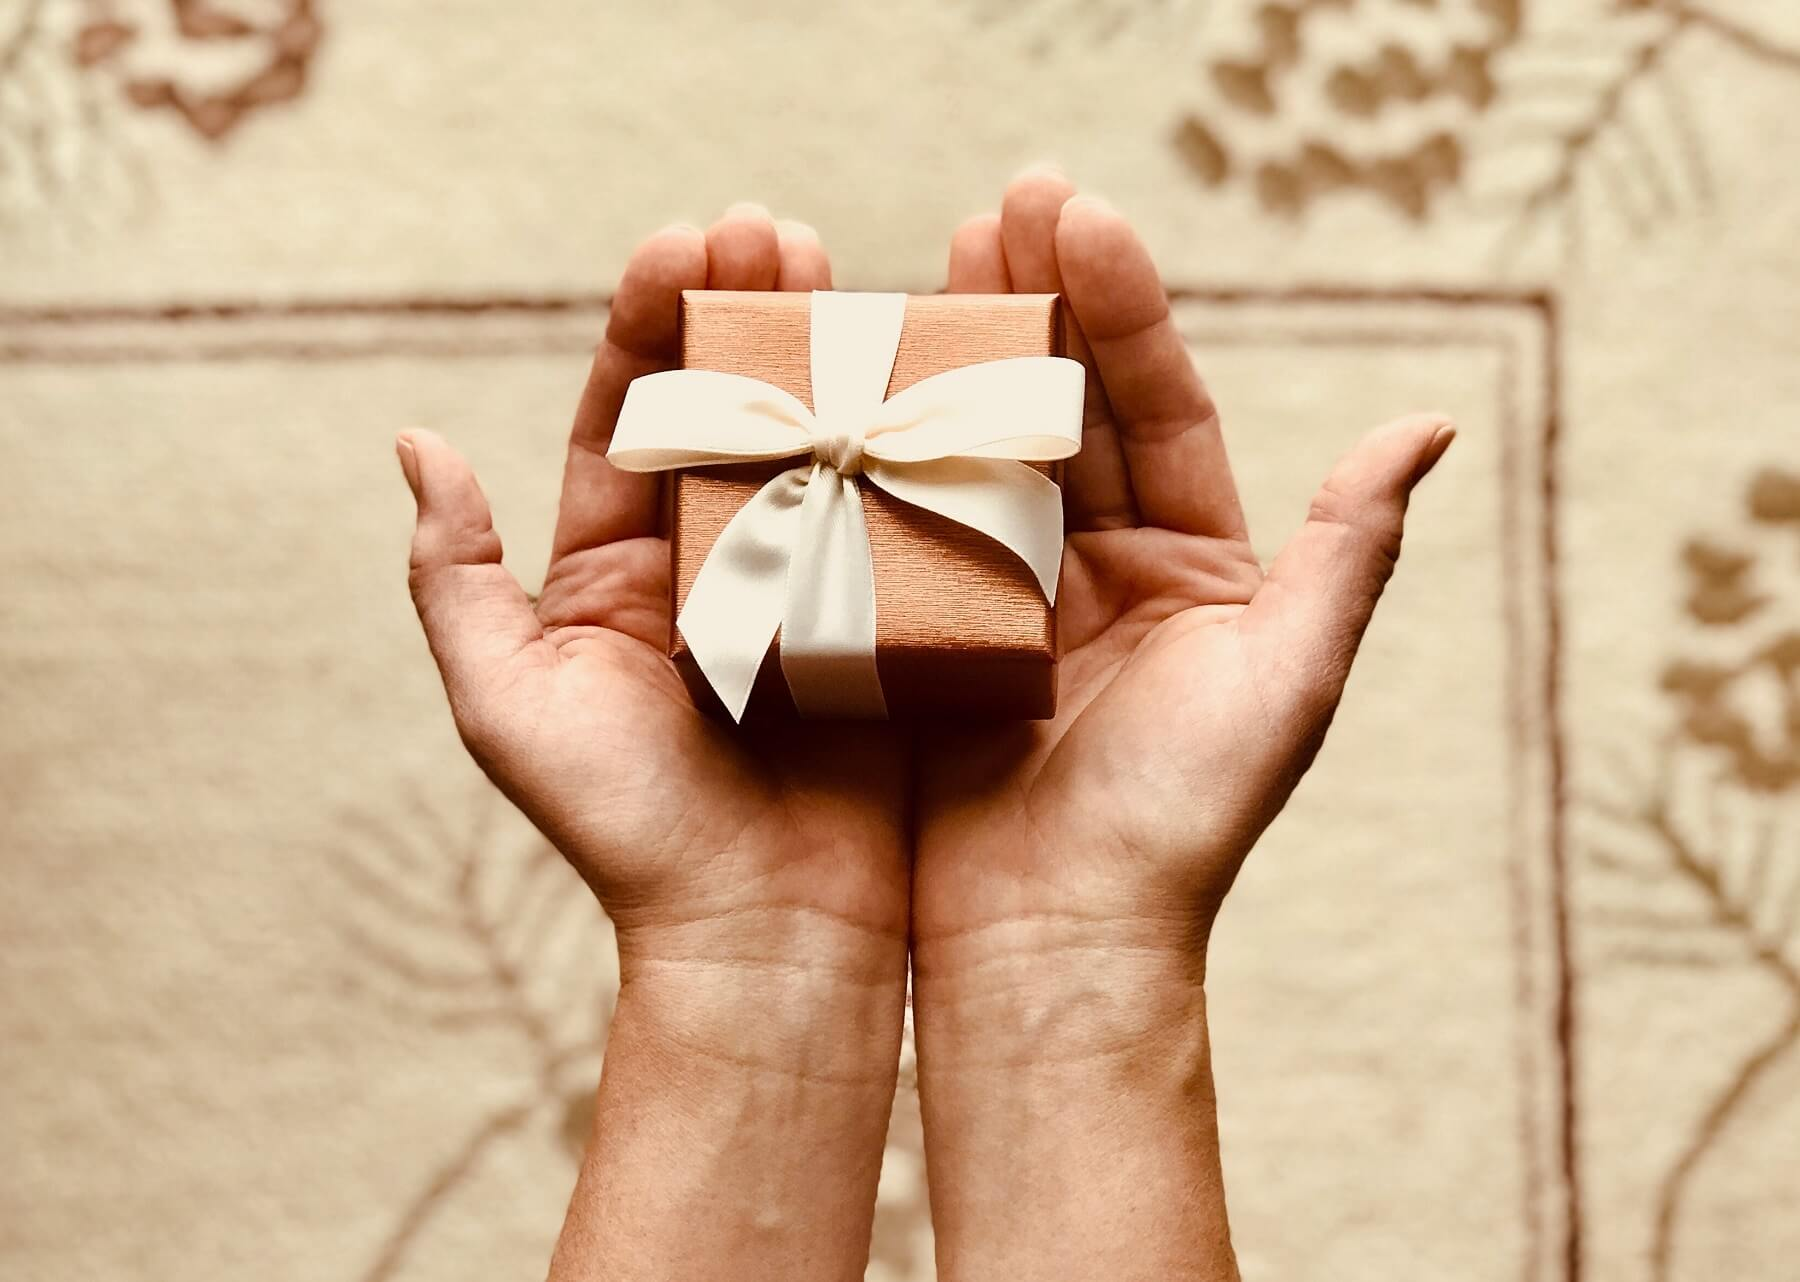 10 Cheap Gifts Ideas For Friends That Will Make A Big Impact